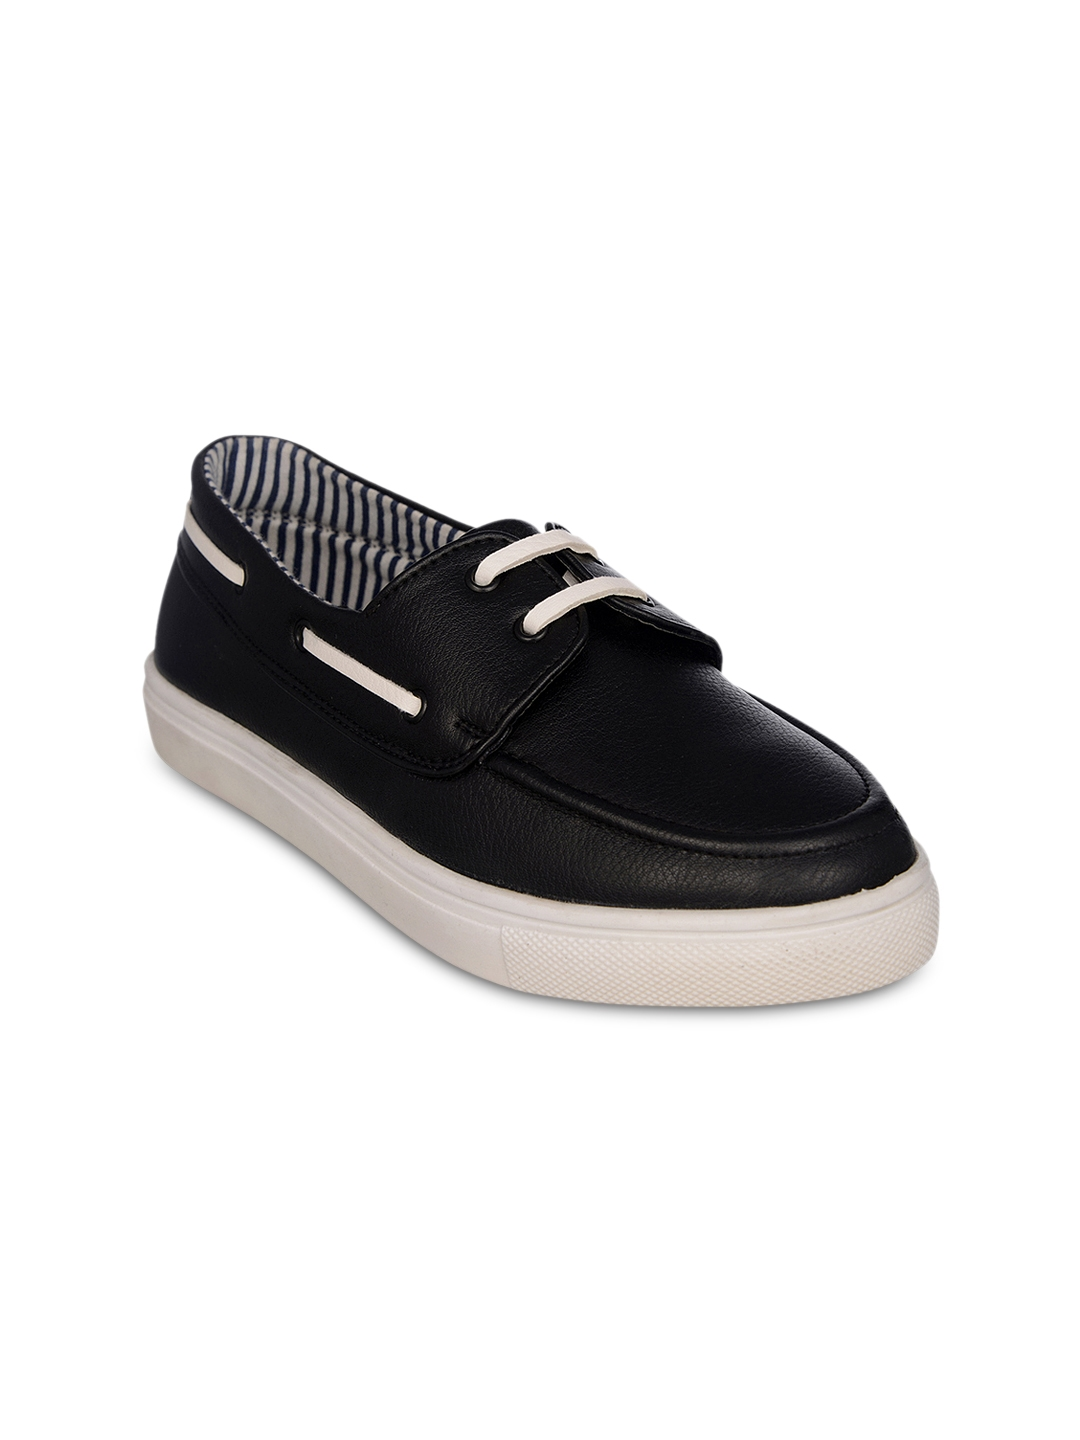 77c3b7b6d Buy Bruno Manetti Women Black Solid Boat Shoes - Casual Shoes for ...